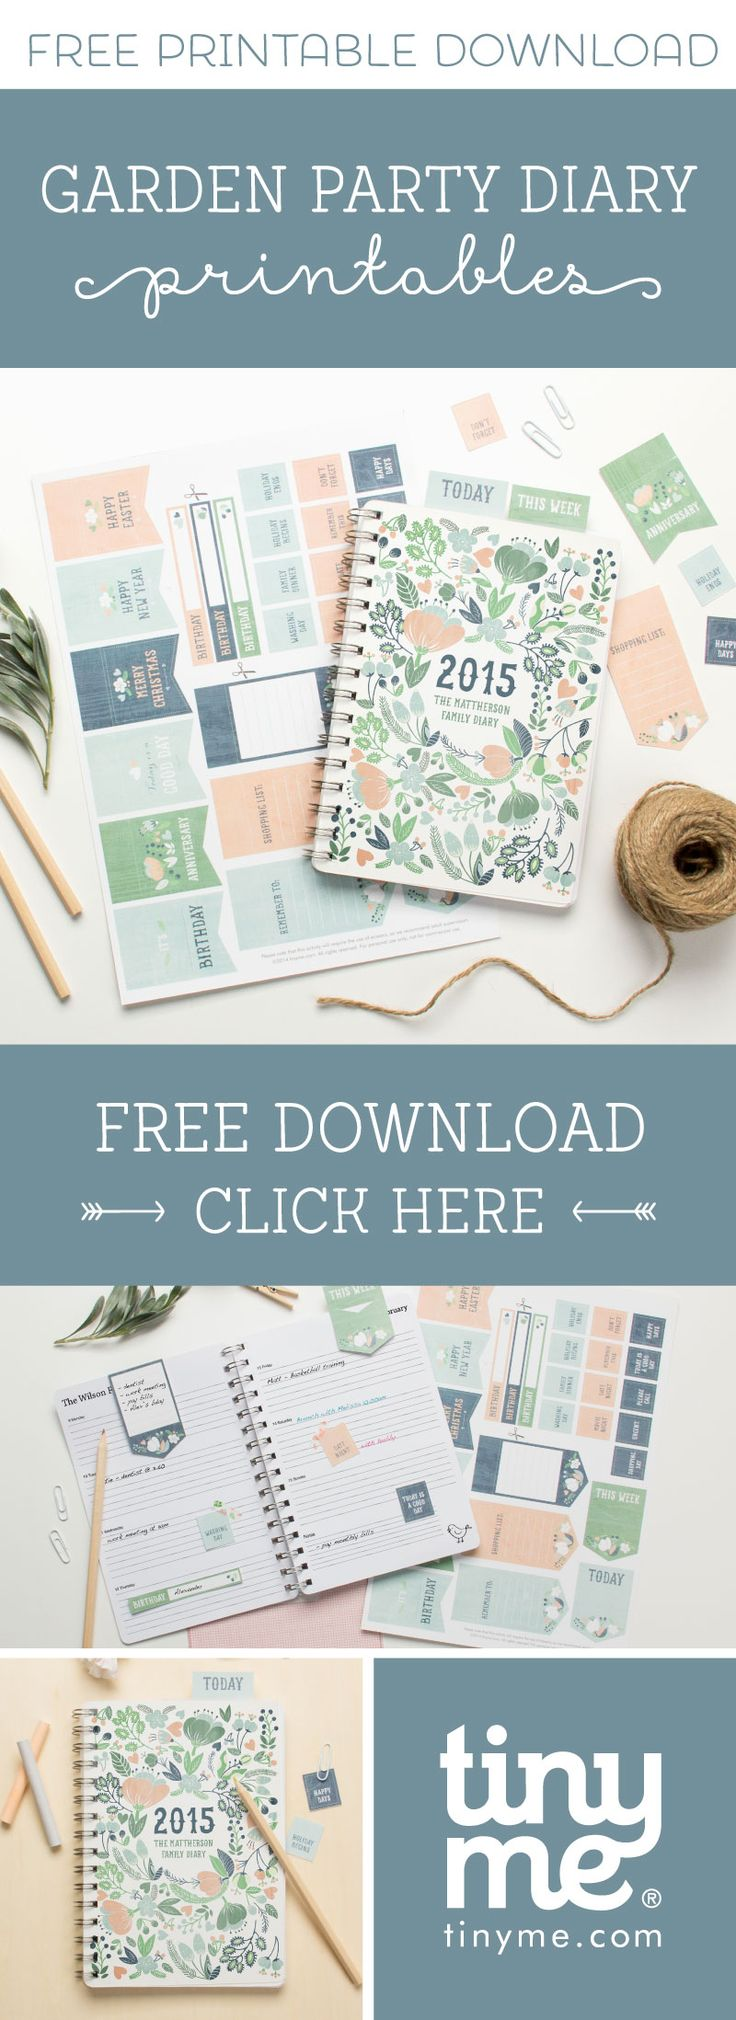 Getting organised has never looked so cute with Free Garden Party Diary Printables | Tinyme Blog